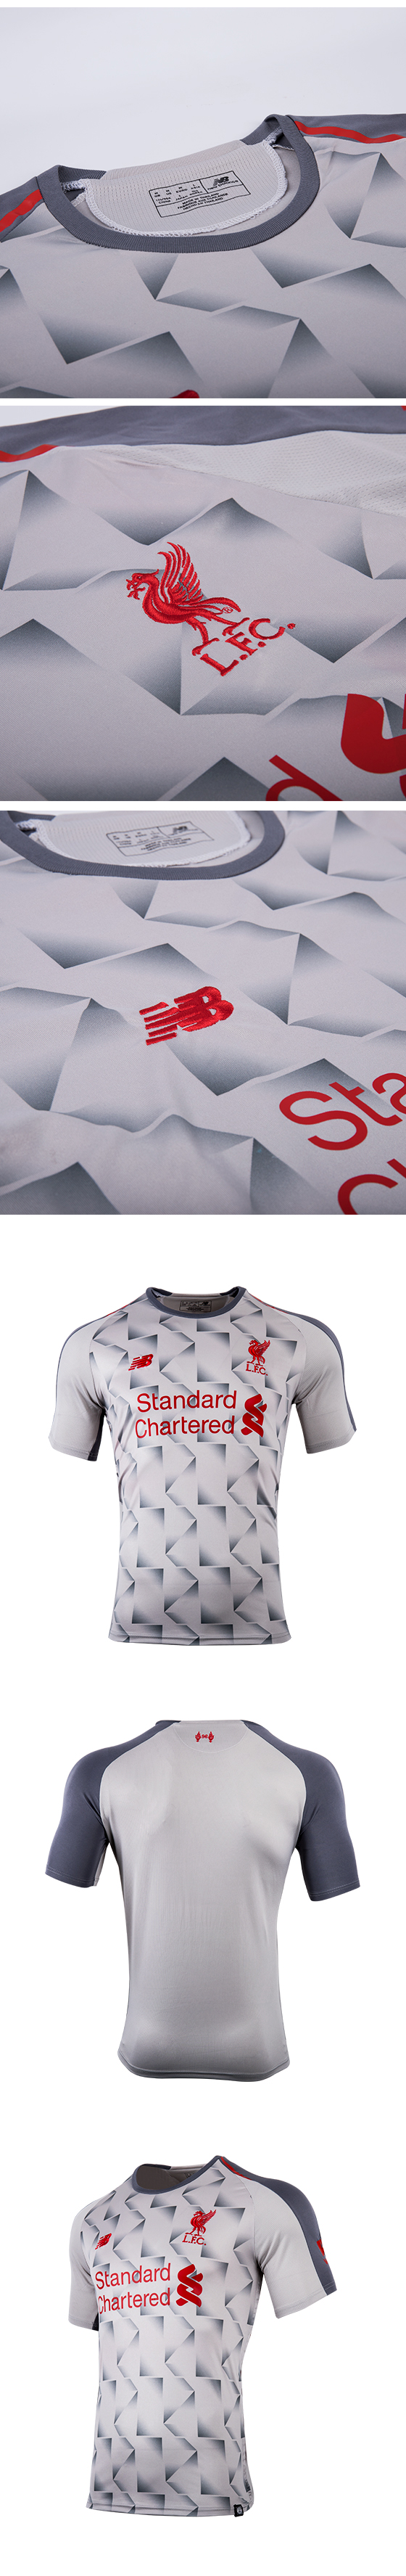 43cf3a13f Update  Official pictures of the Liverpool 18-19 third kit have leaked